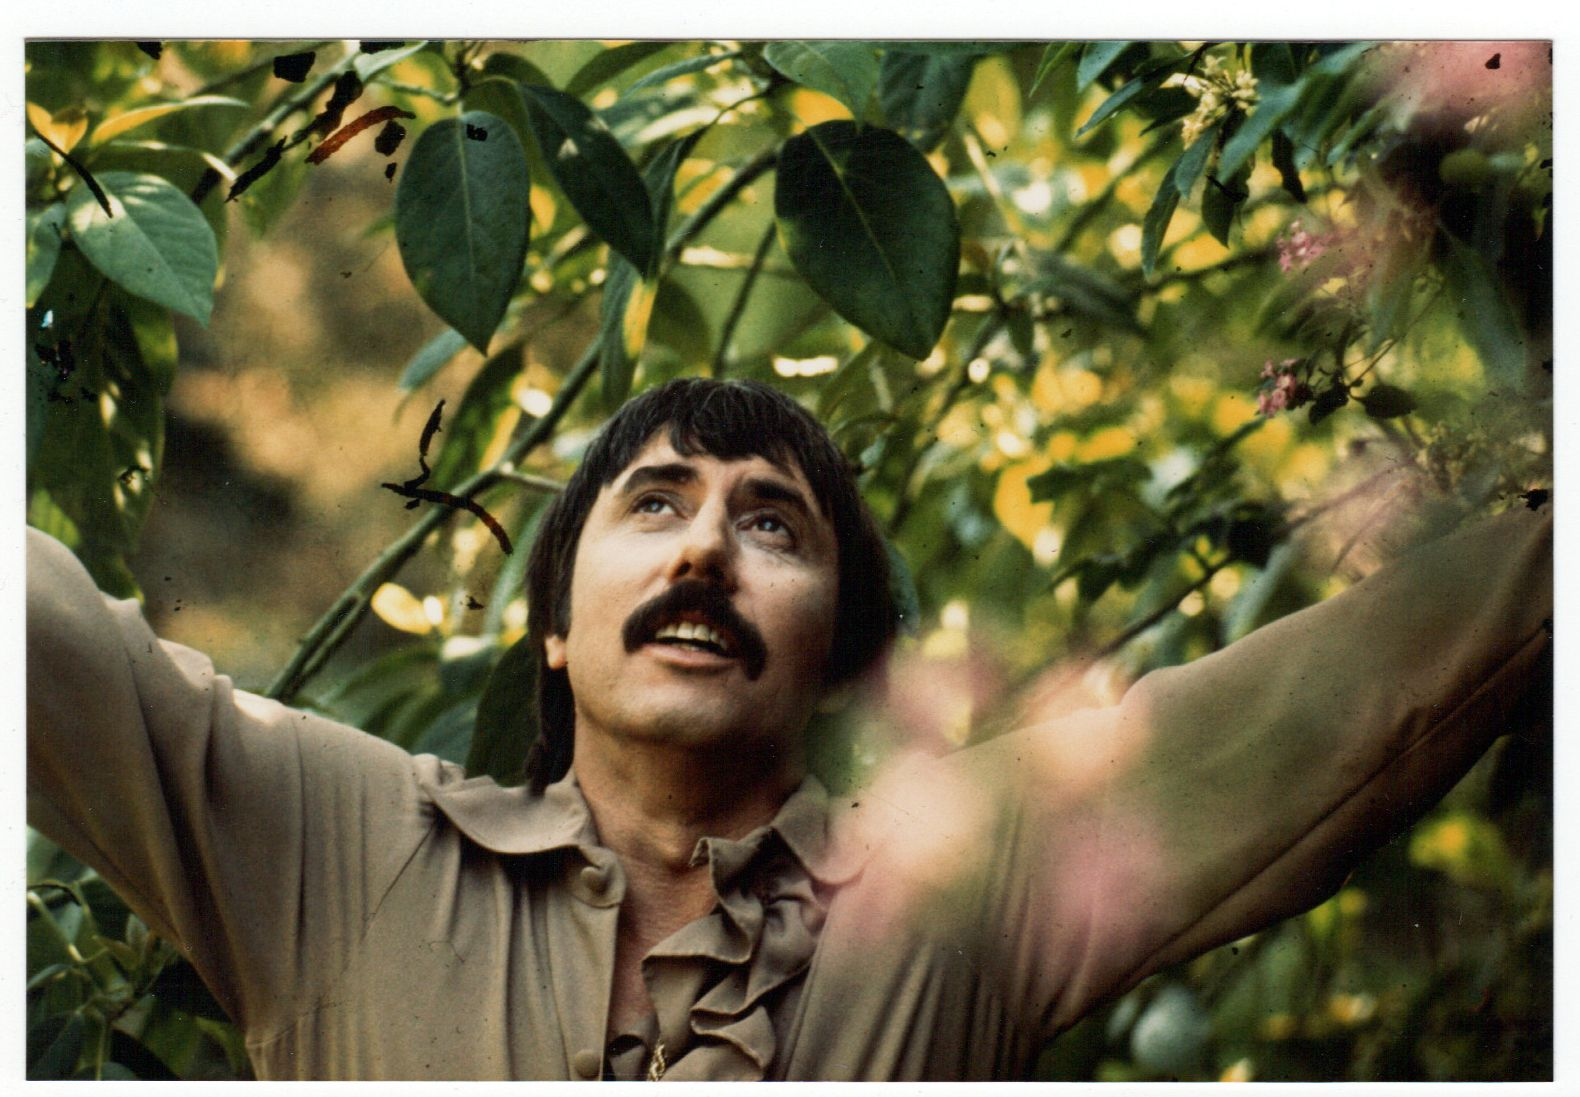 Lee_Hazlewood_Garden_Courtesy_of_Mark_Pickerel